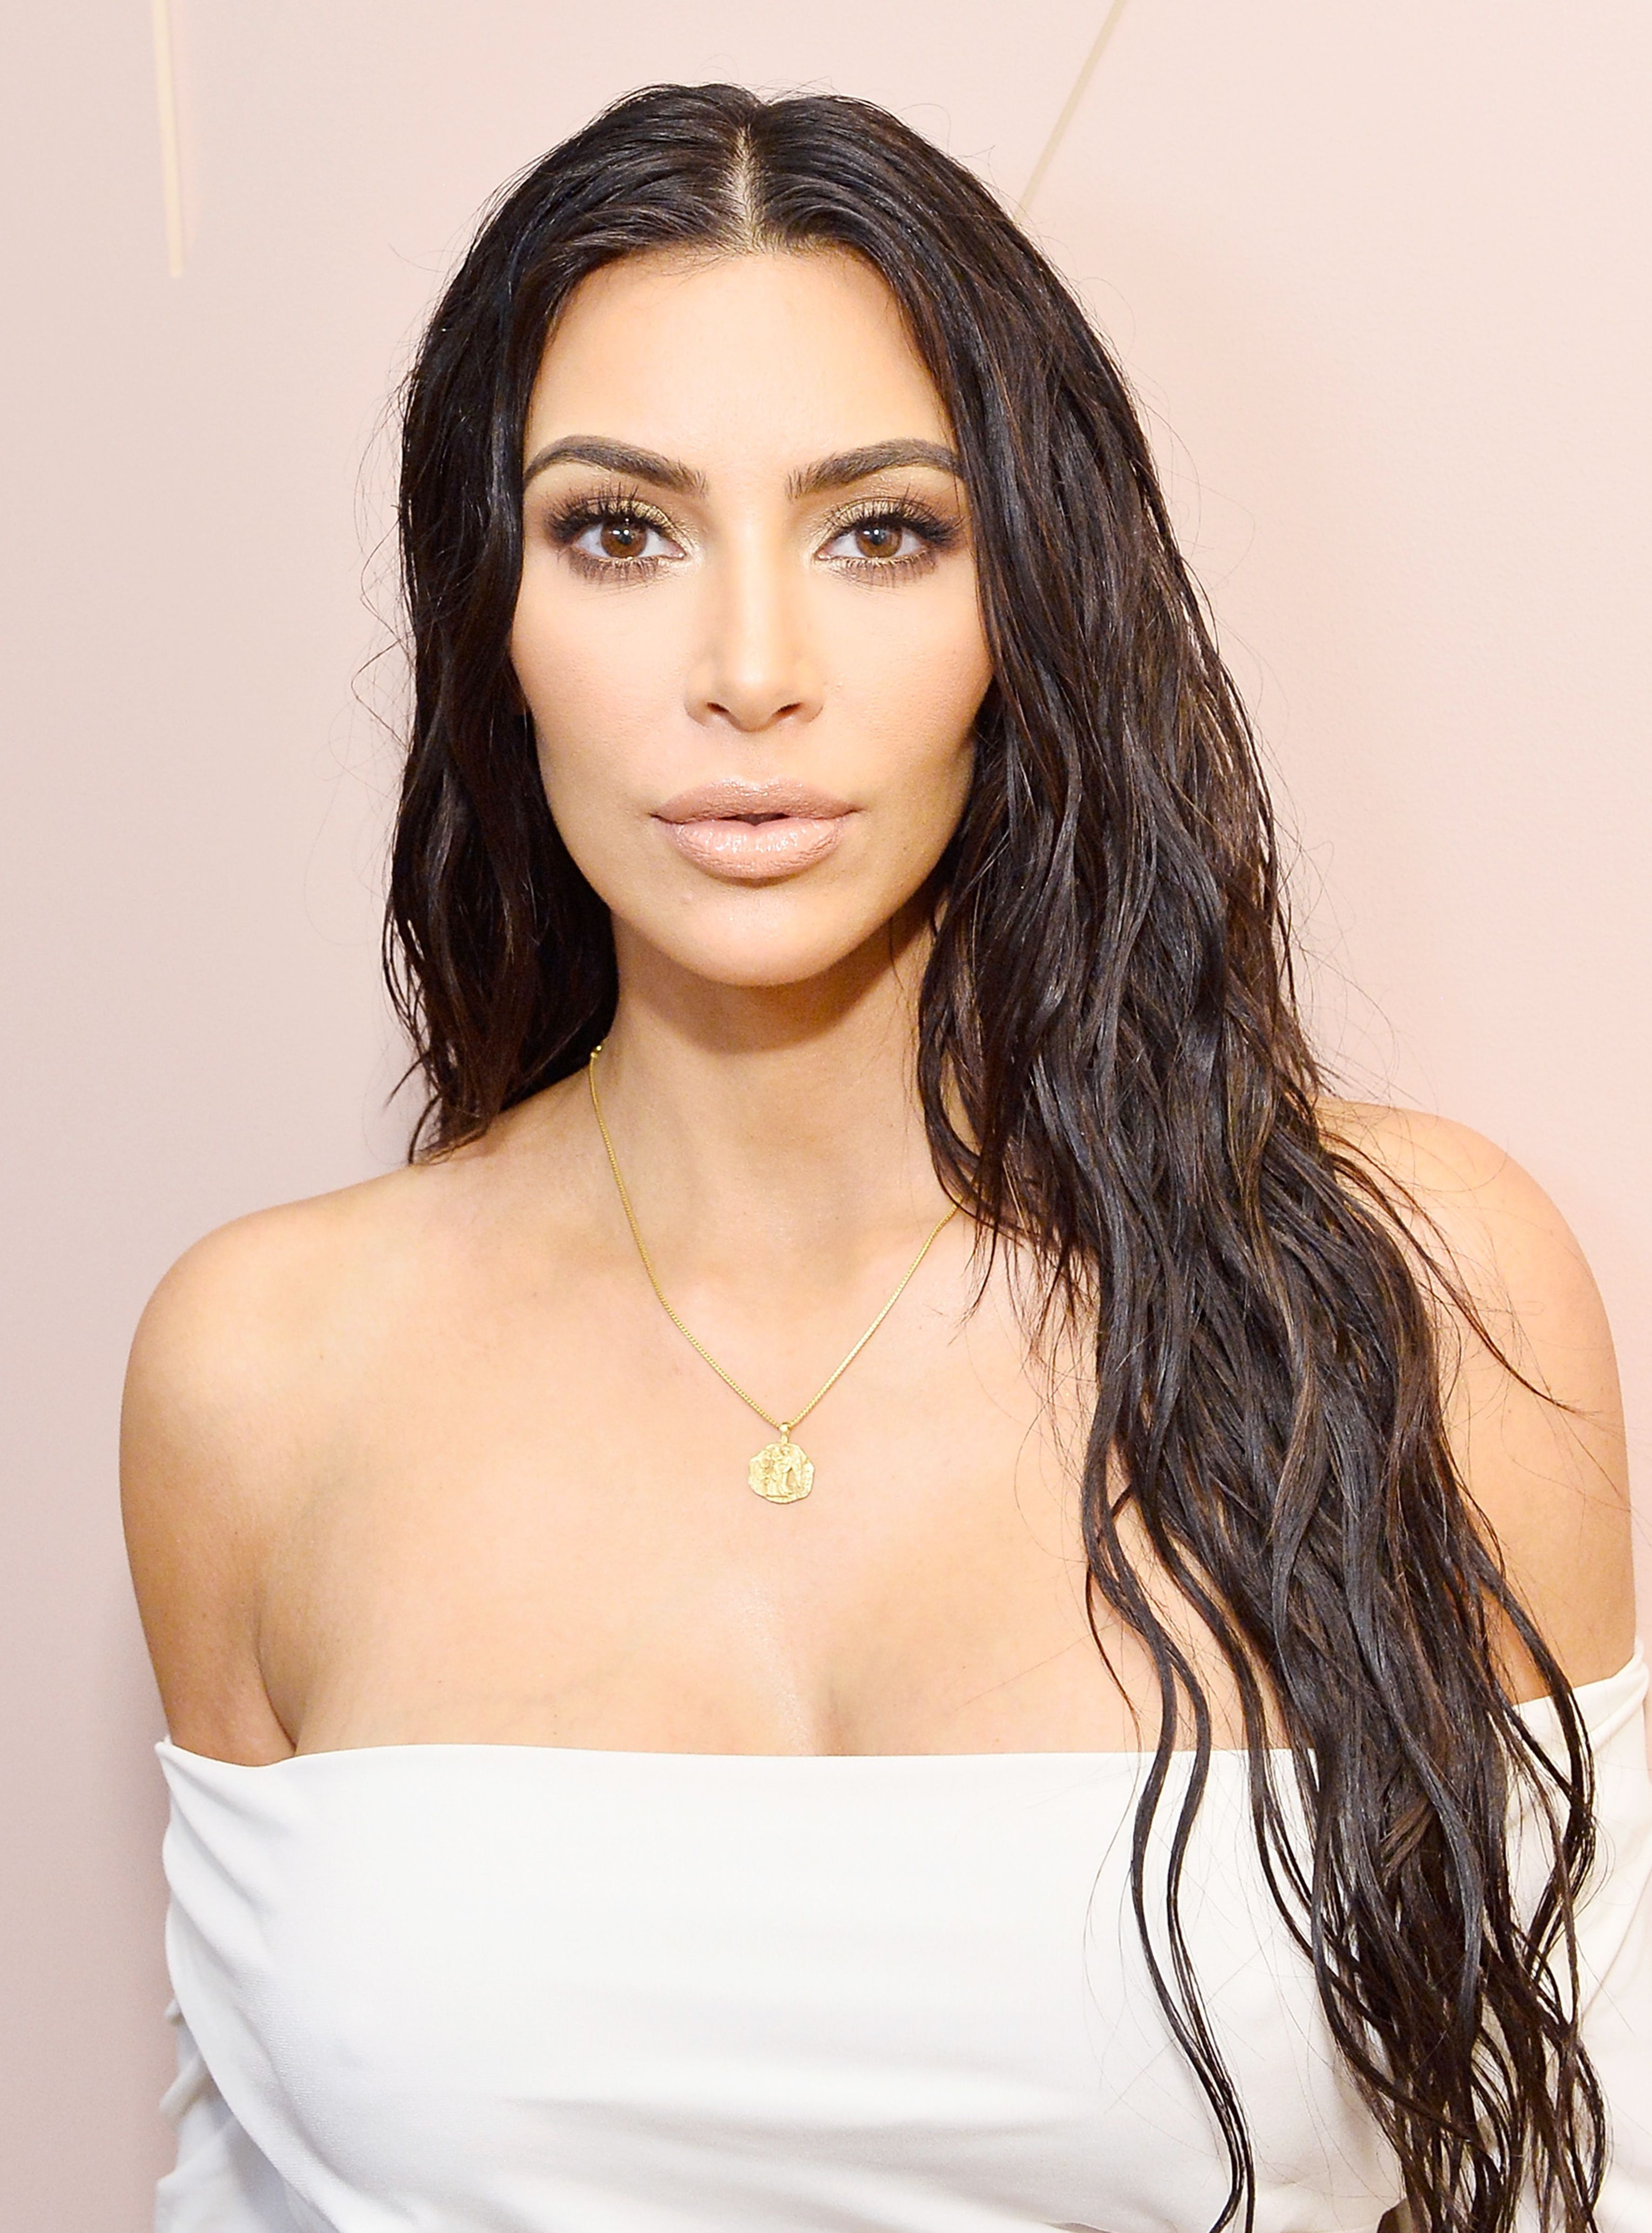 Watch Kim Kardashian's Beauty Routine: Four Eyeliners, Ombre Brows And Sleeping In Make-Up video